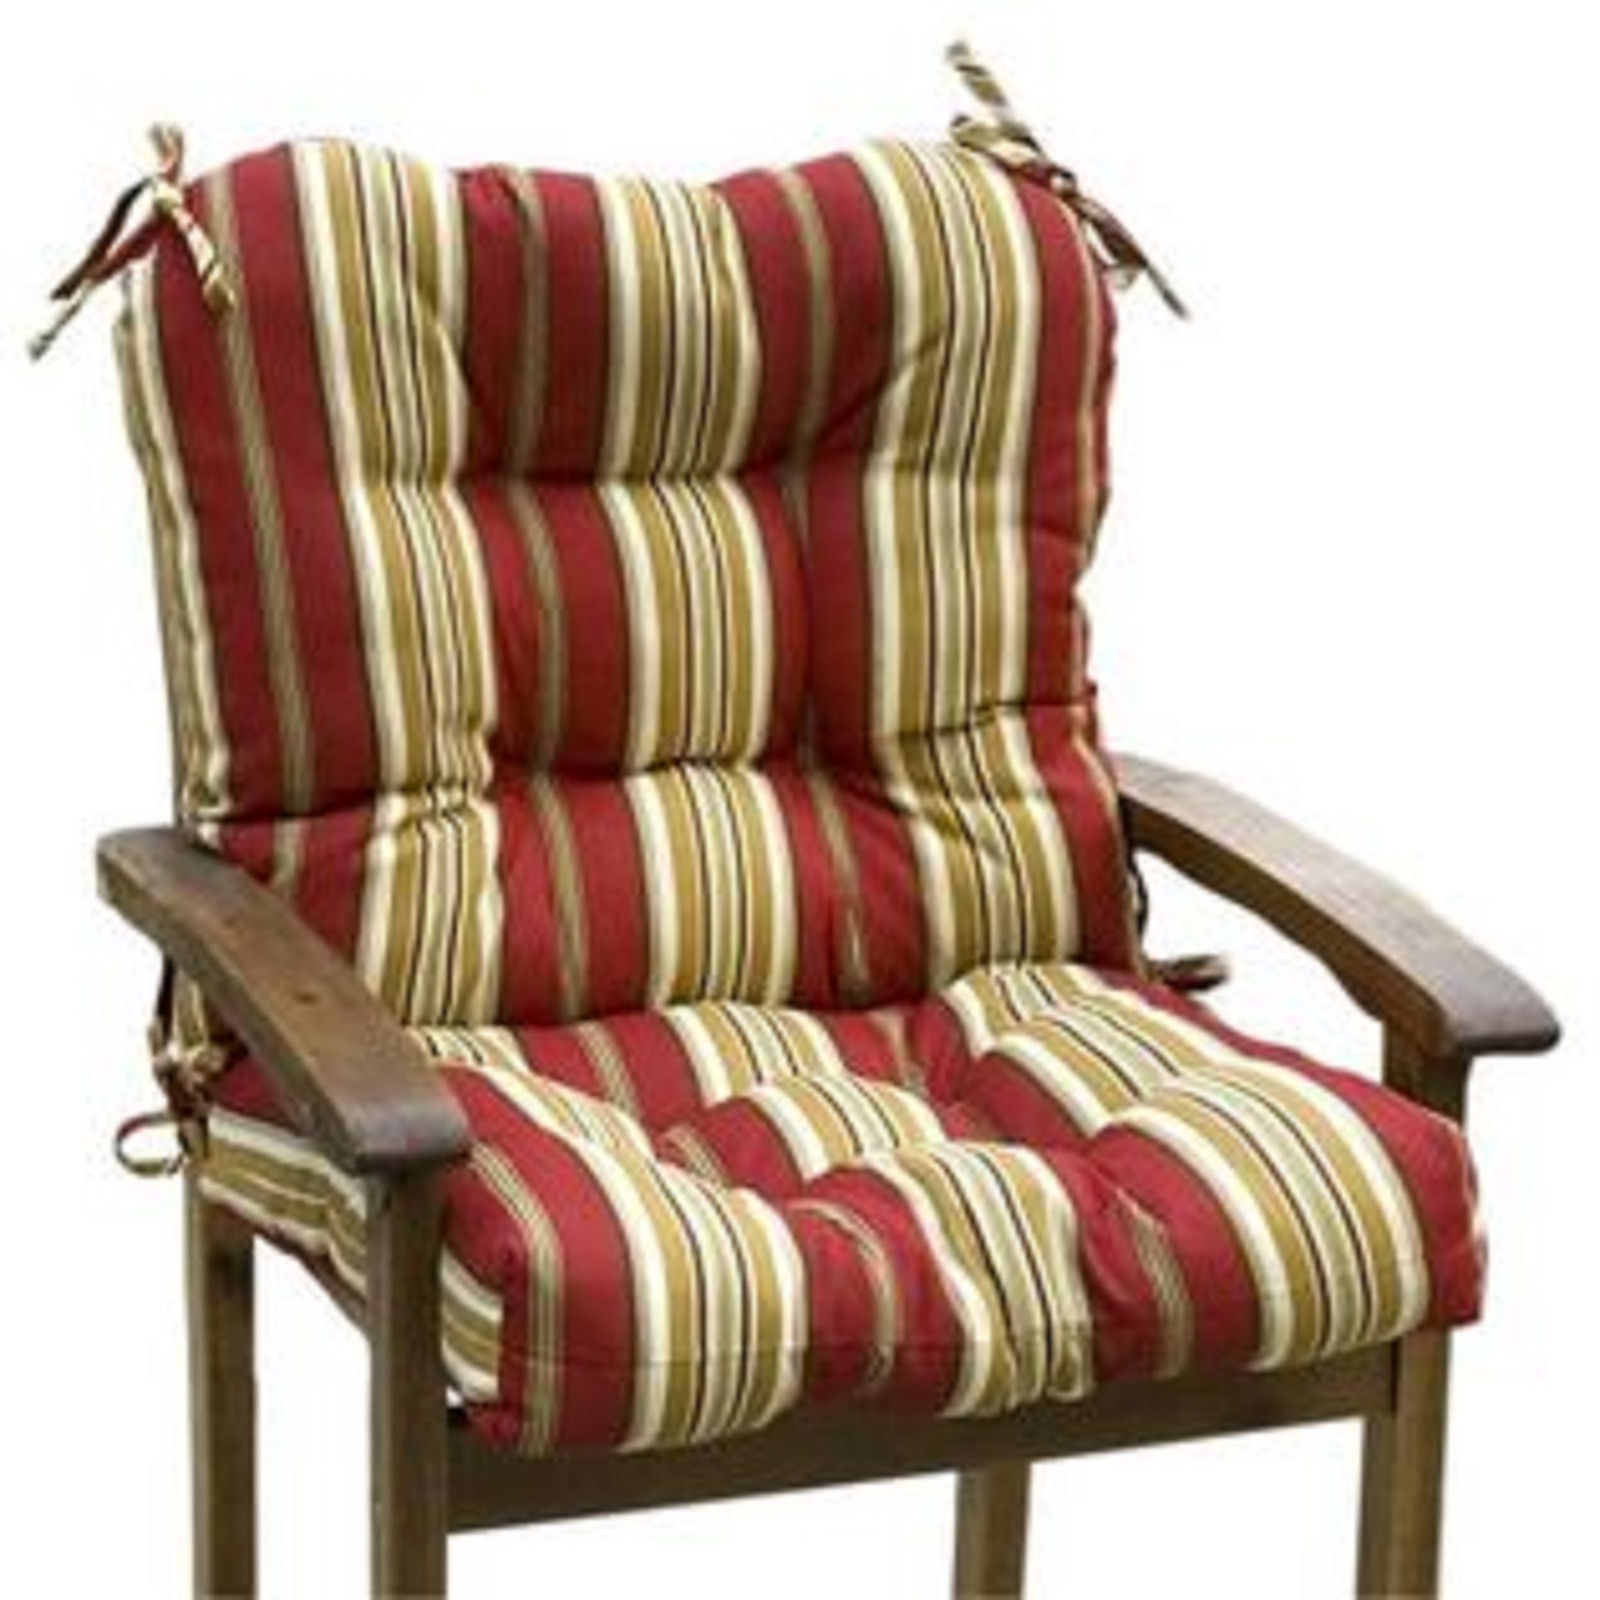 Best ideas about Outdoor Patio Chair Cushions . Save or Pin Greendale Home Fashions Outdoor Seat Back Chair Cushion Now.